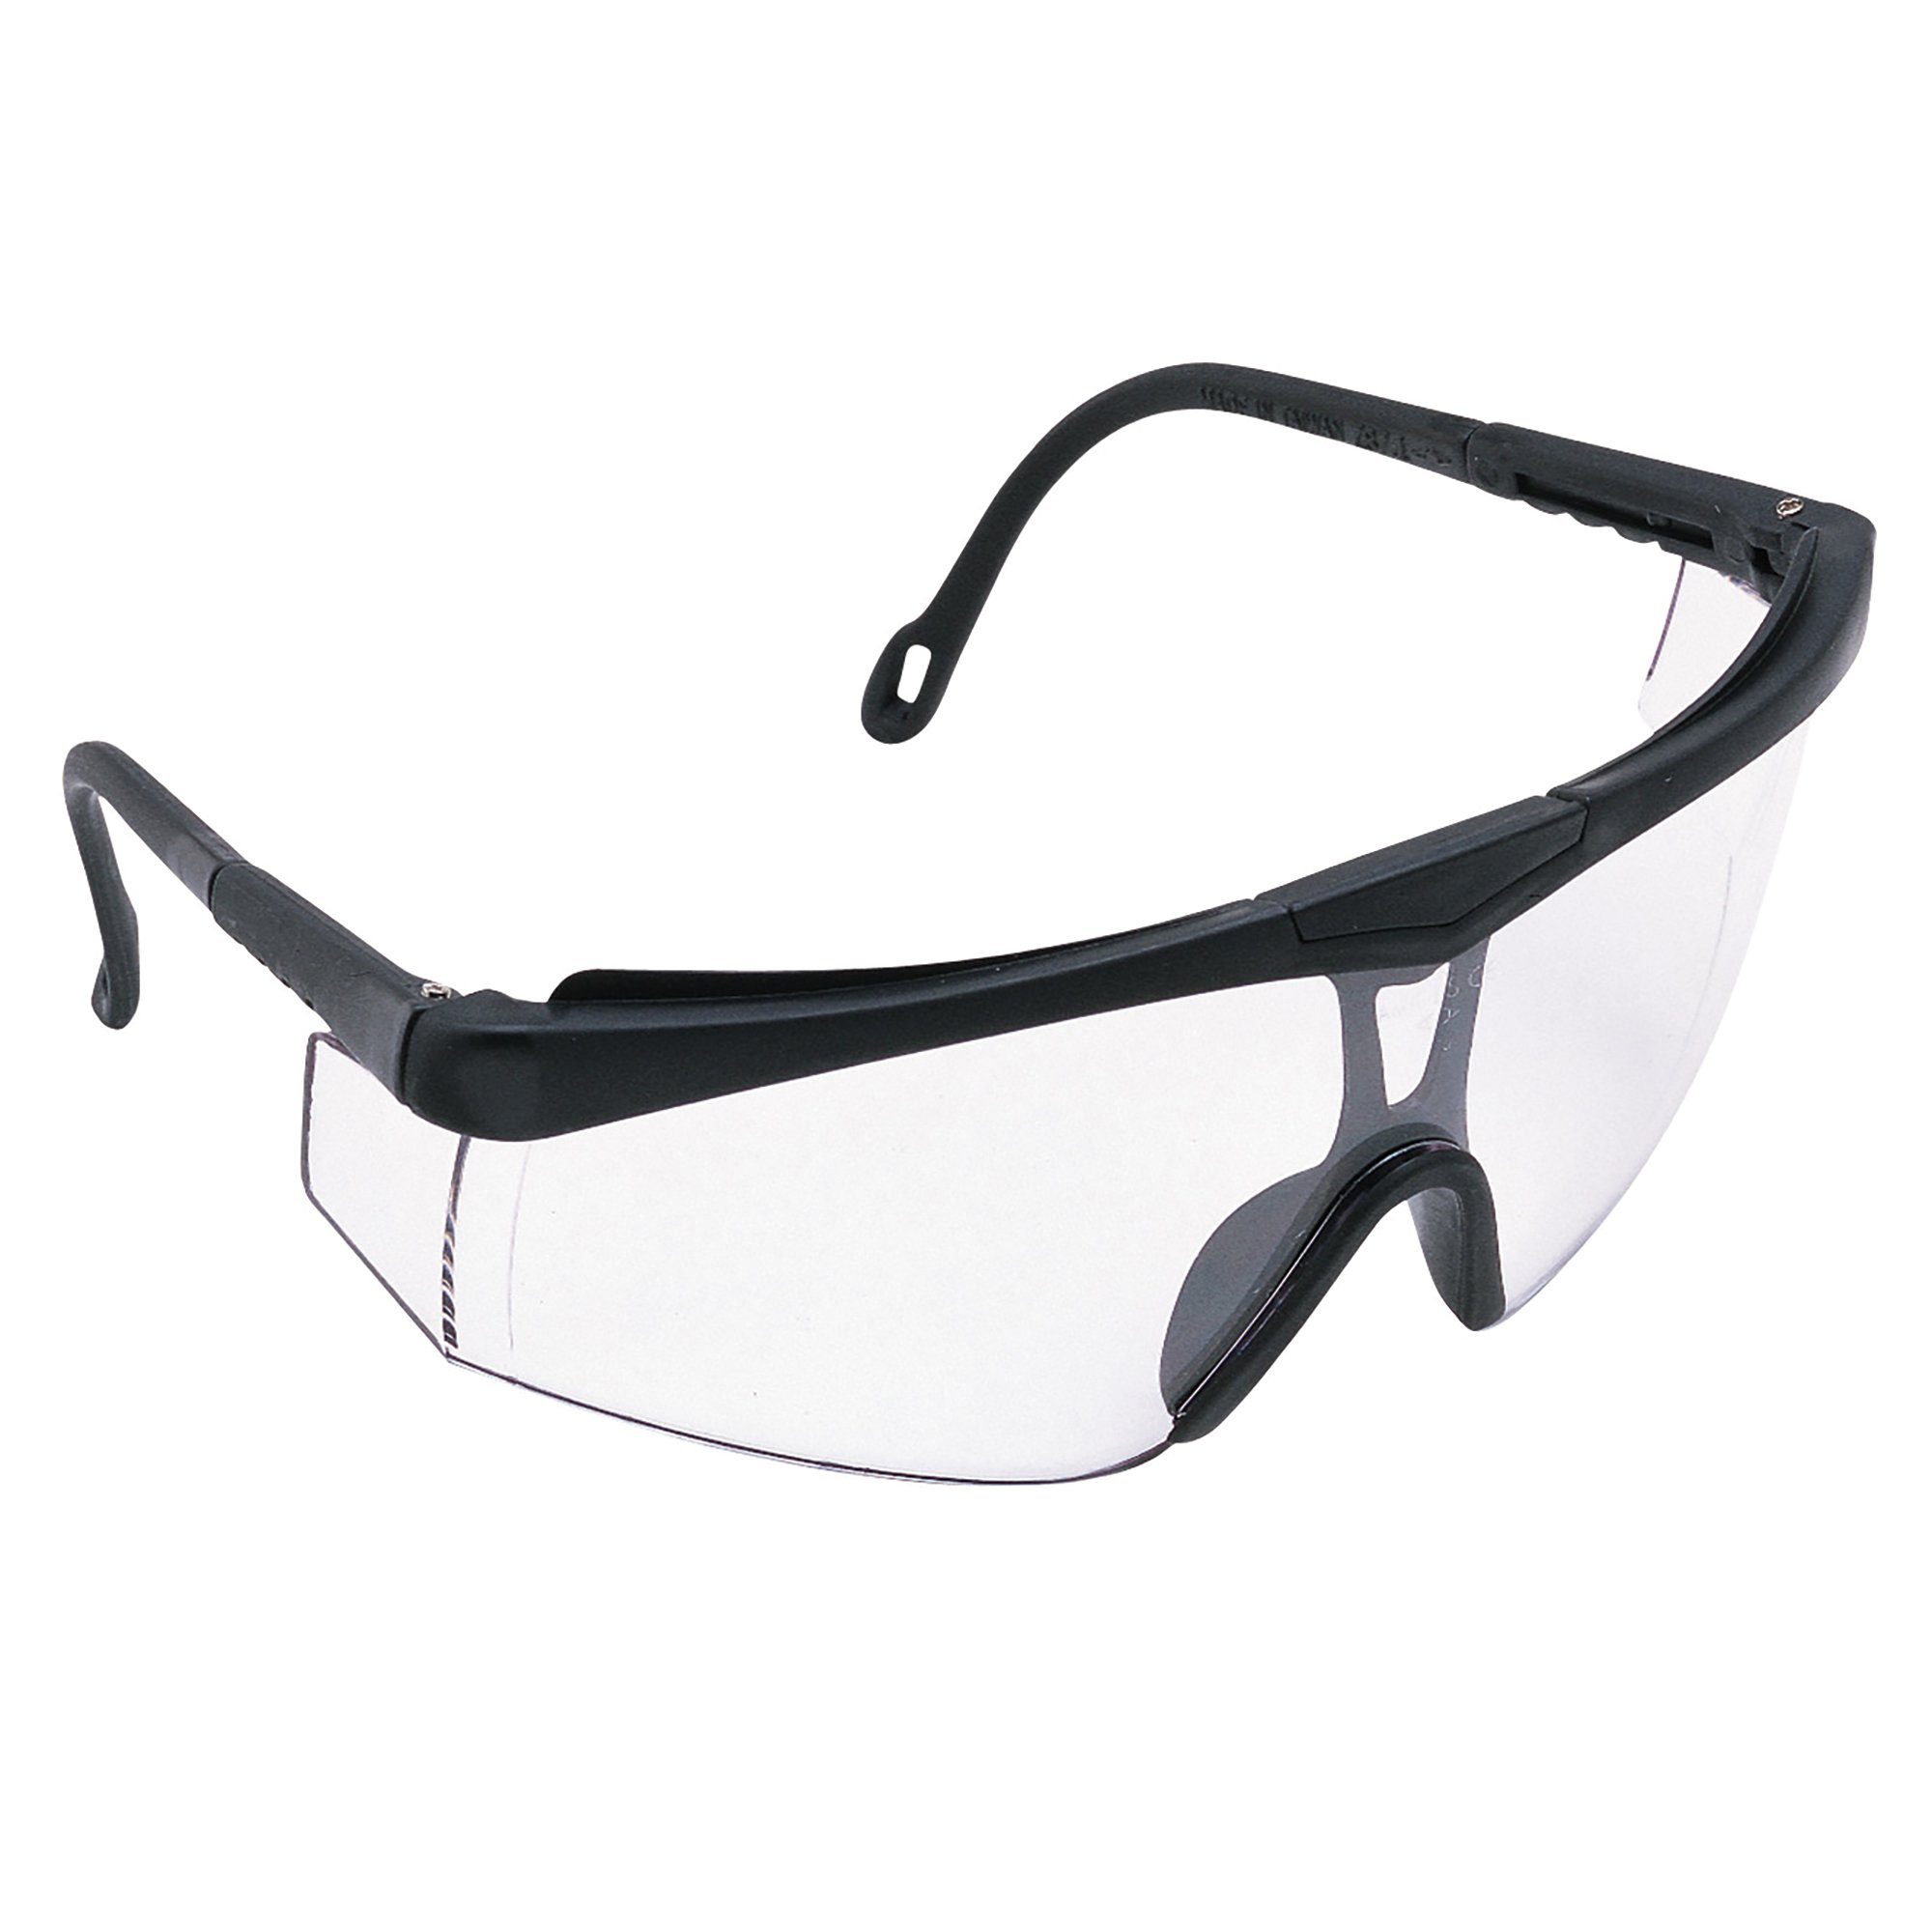 Jackson Safety Cudas Safety Glasses (14464), Adjustable Black Frame, Clear Lens, 12 Pairs/Case